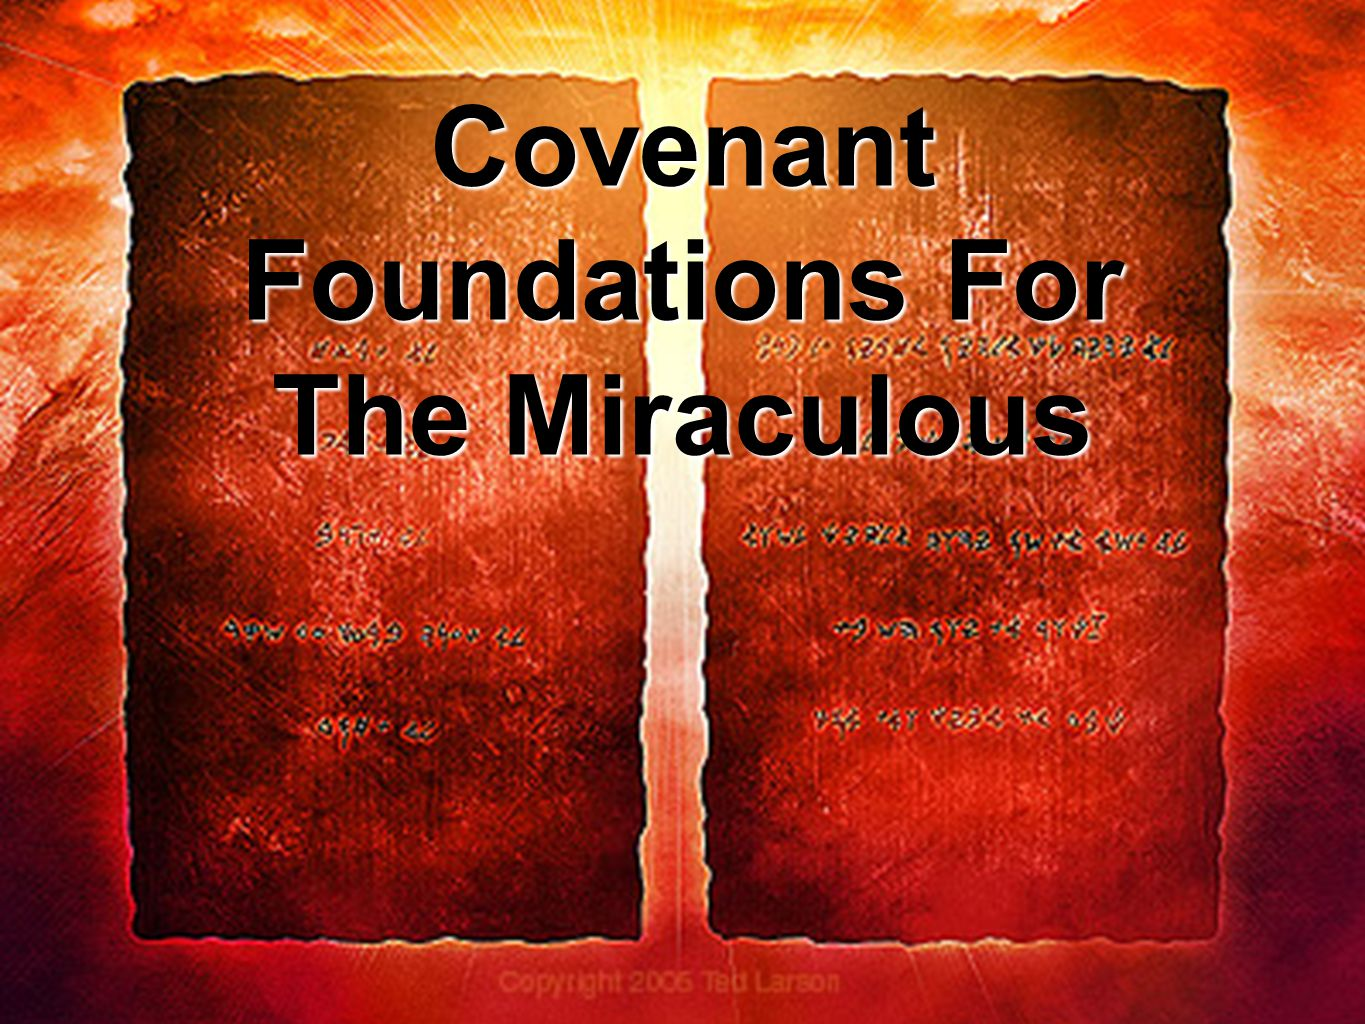 Covenant Foundations For The Miraculous